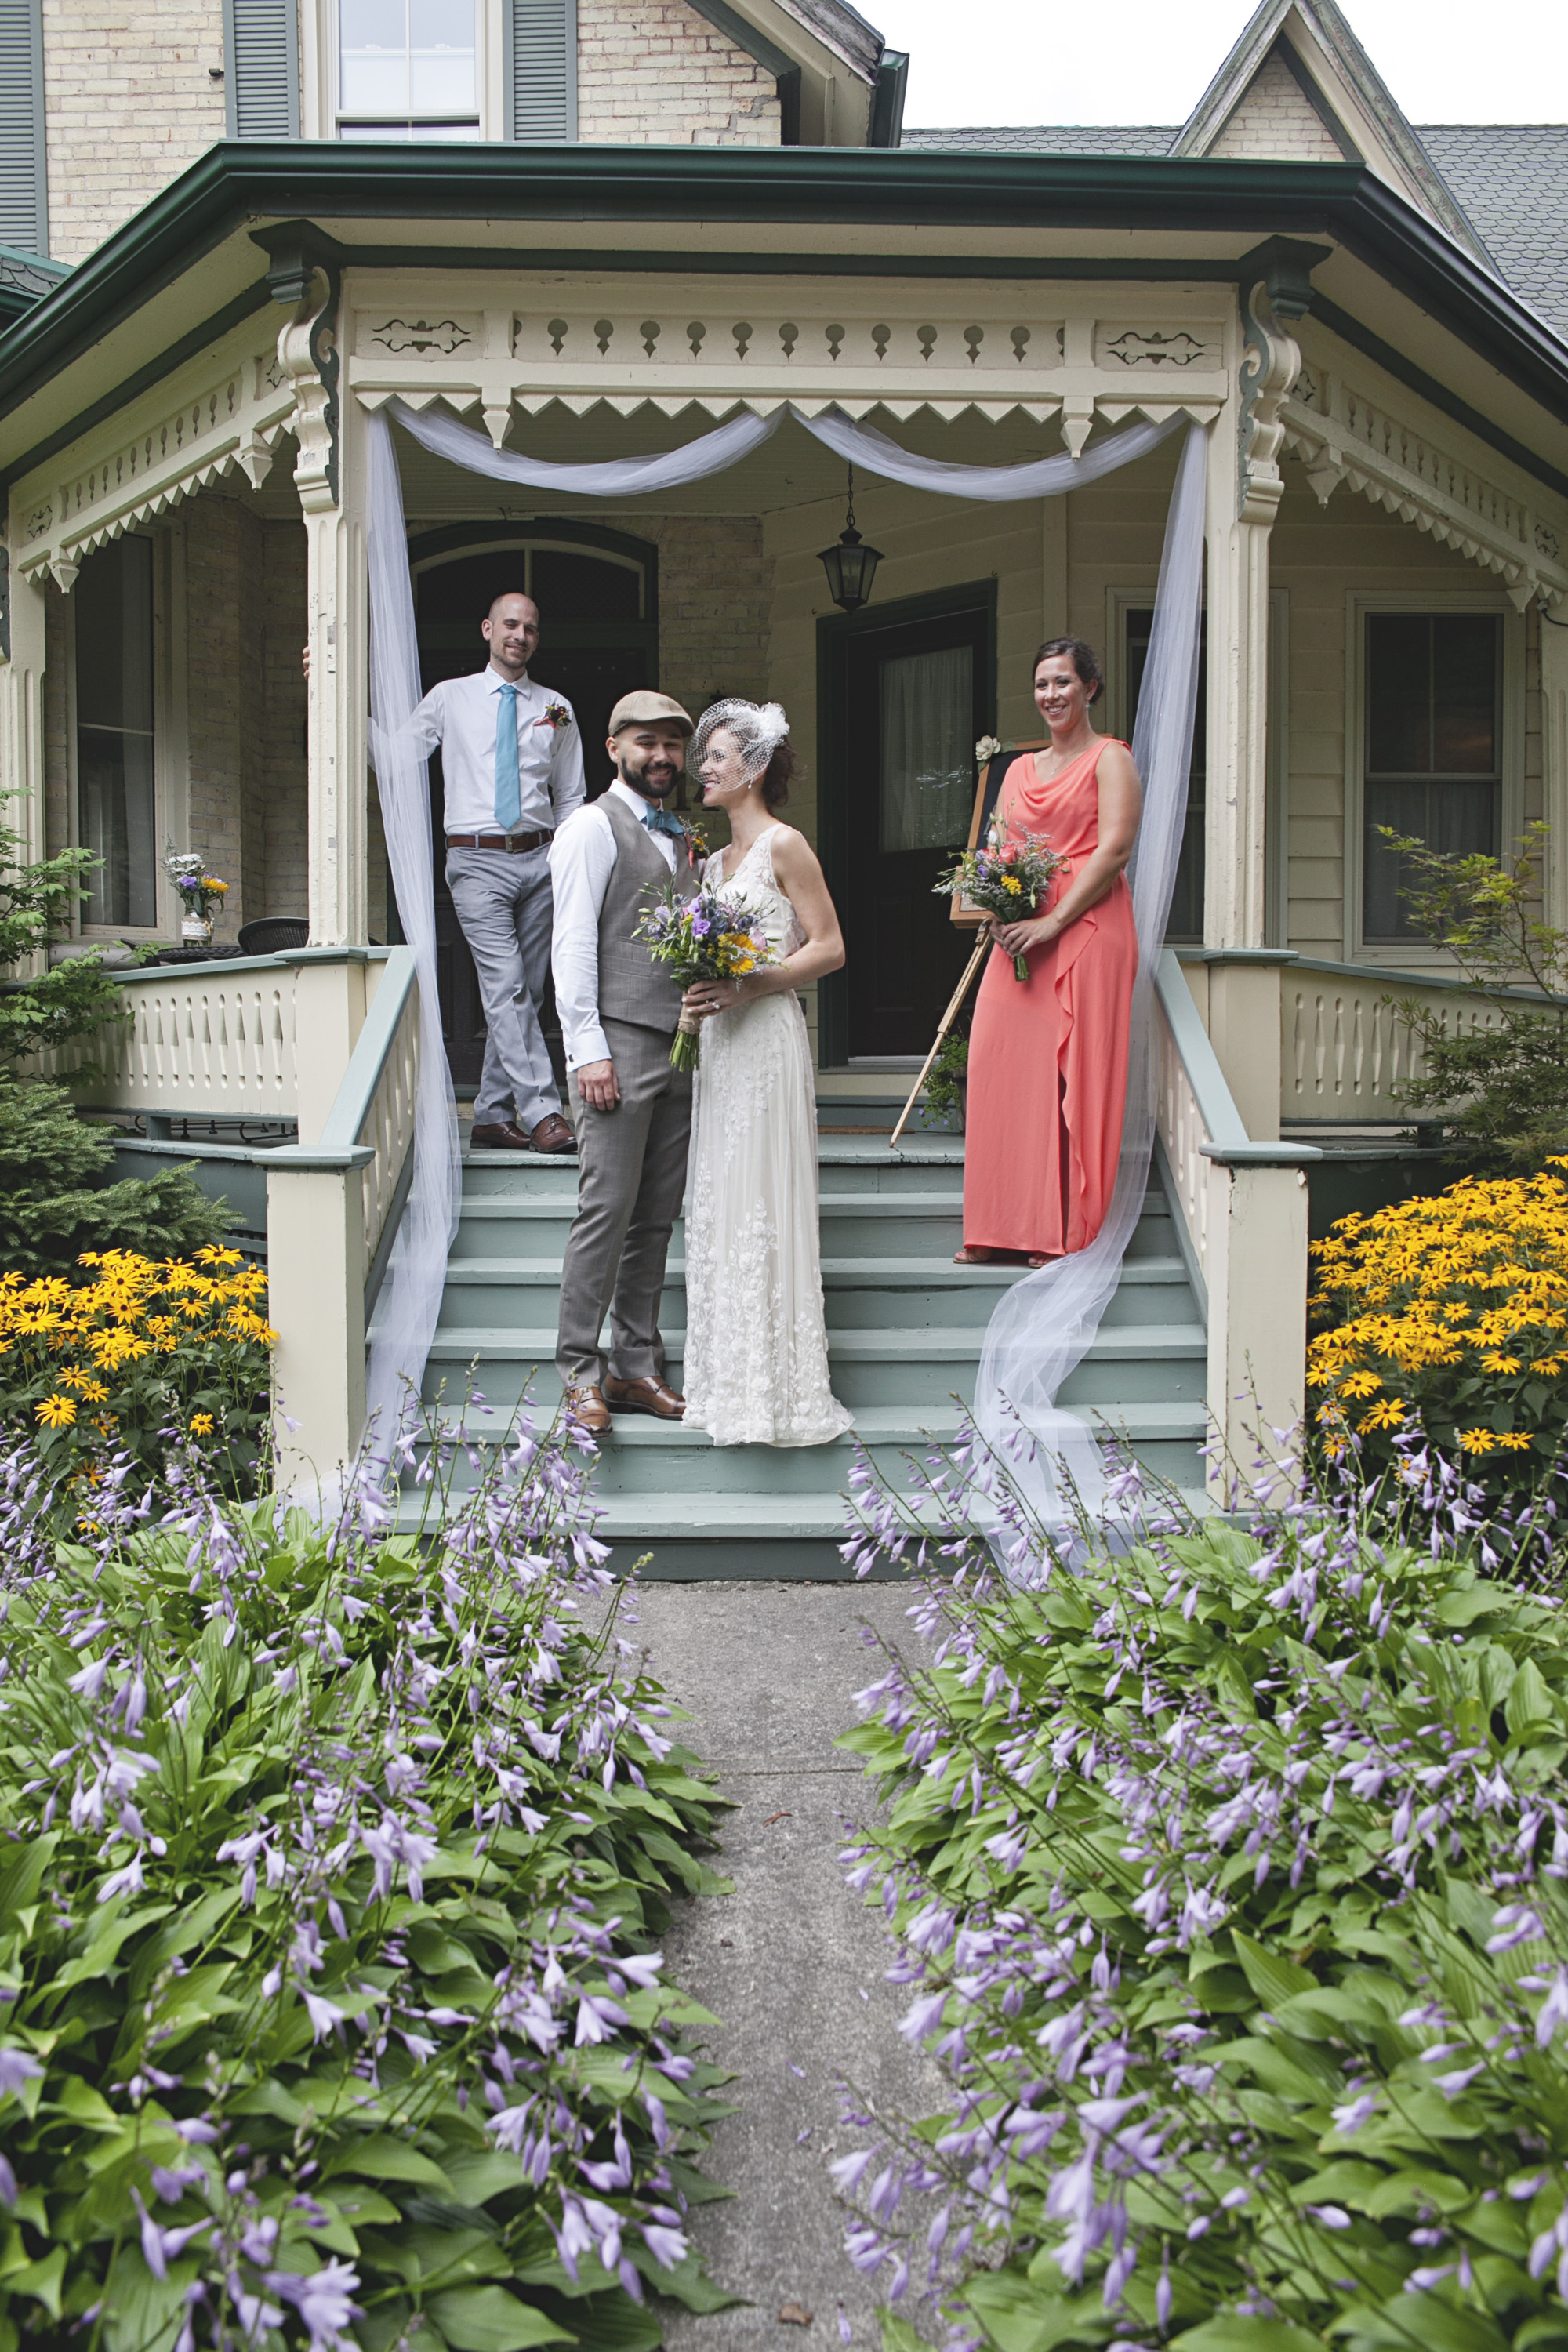 Outdoor bridal party photos in Ontario